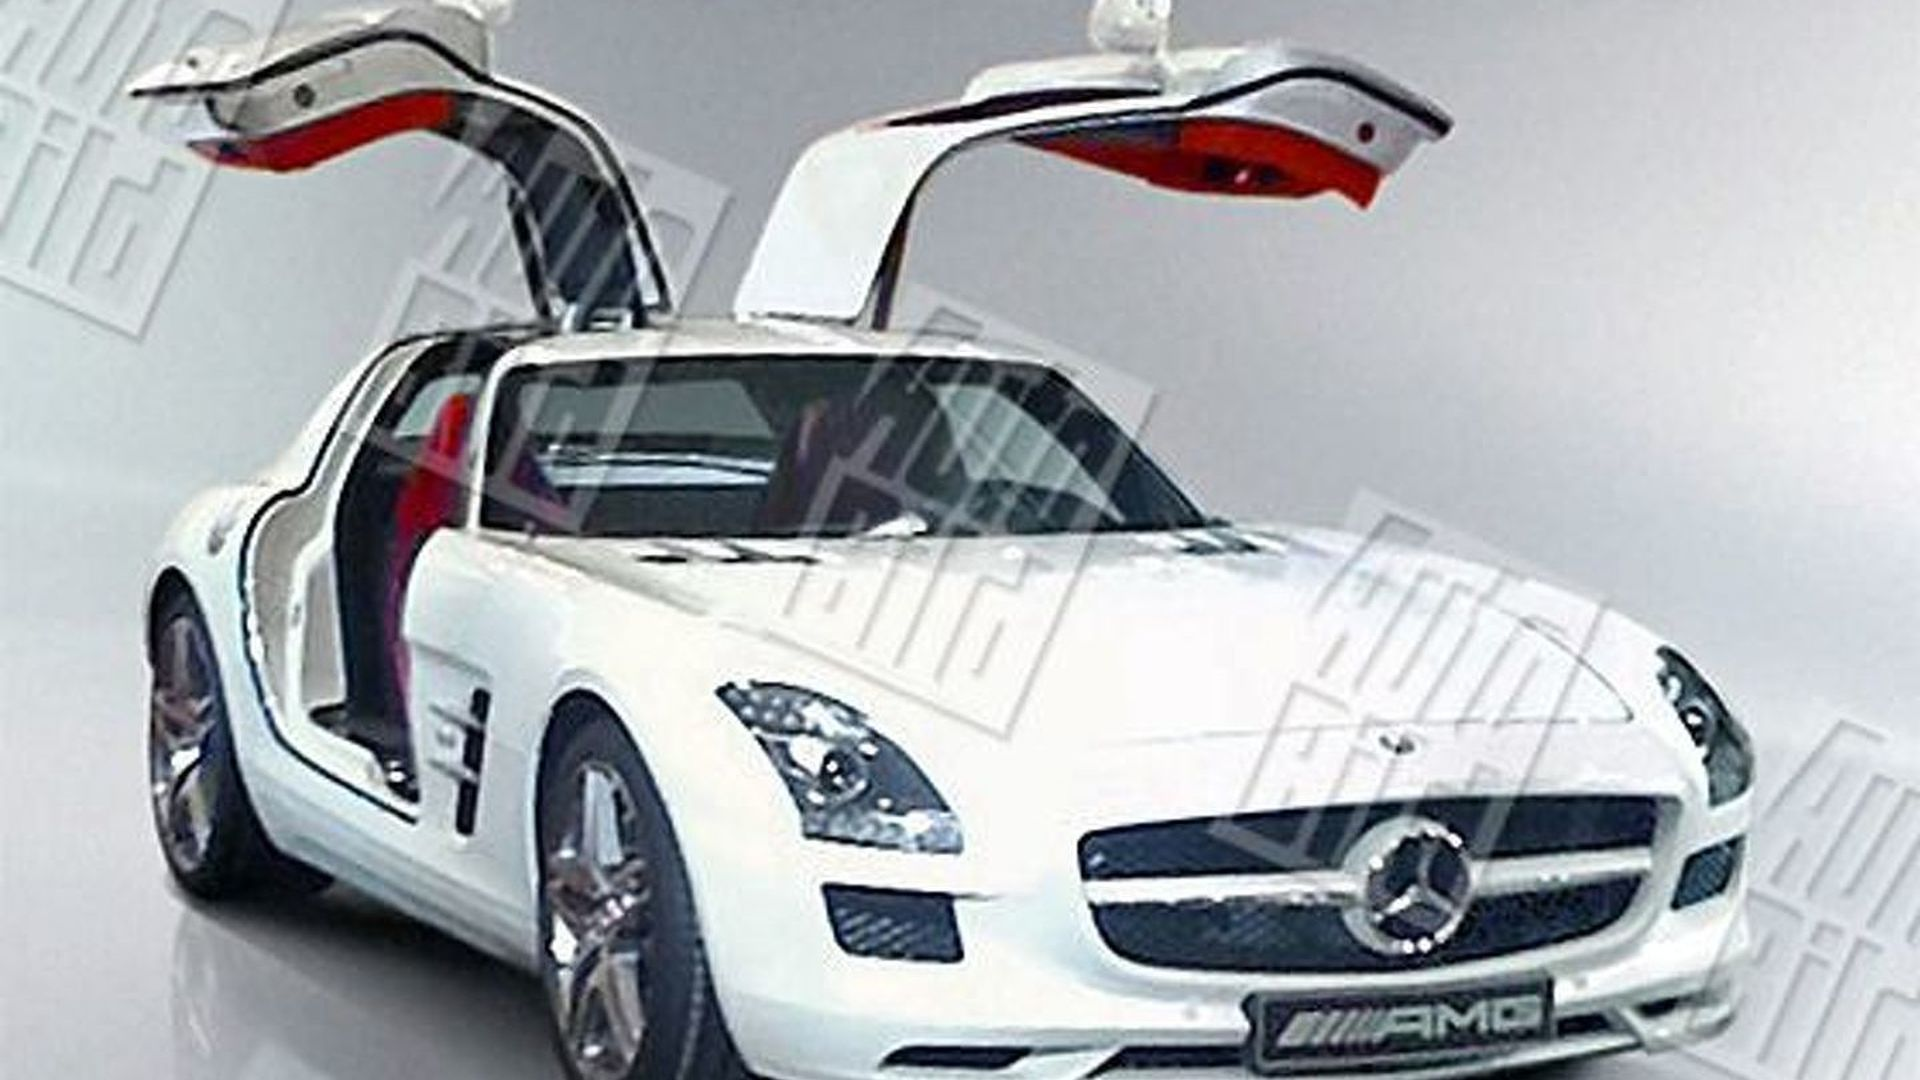 Autobild unleashes more mercedes sls amg gullwing images for Mercedes benz amg gullwing